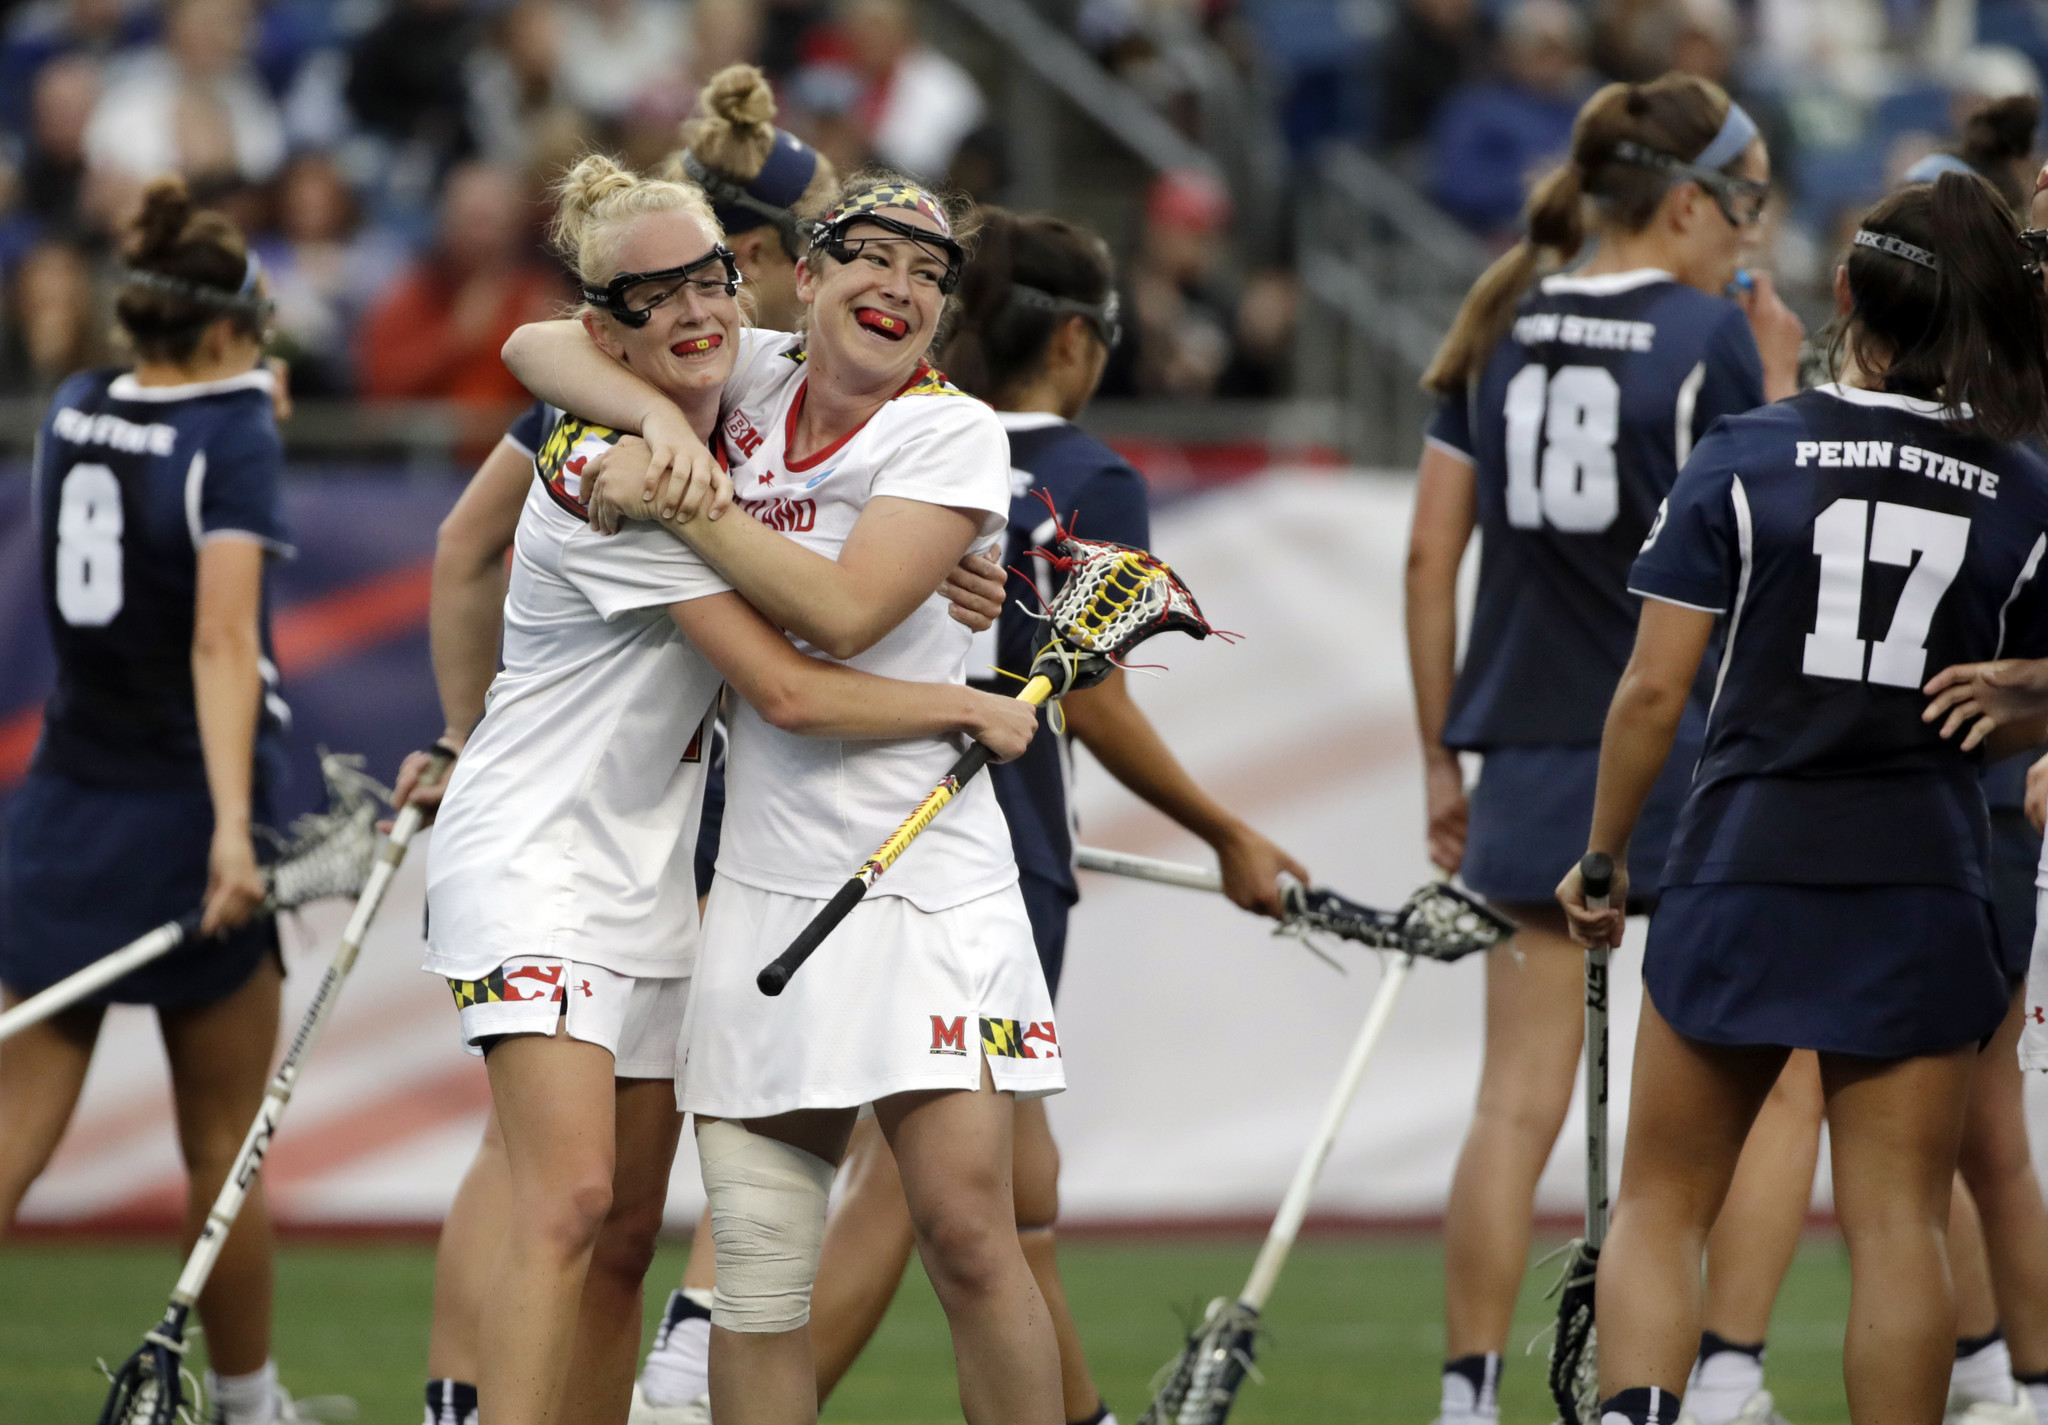 Bal-maryland-routs-penn-state-20-10-to-advance-to-women-s-lacrosse-national-championship-game-20170526